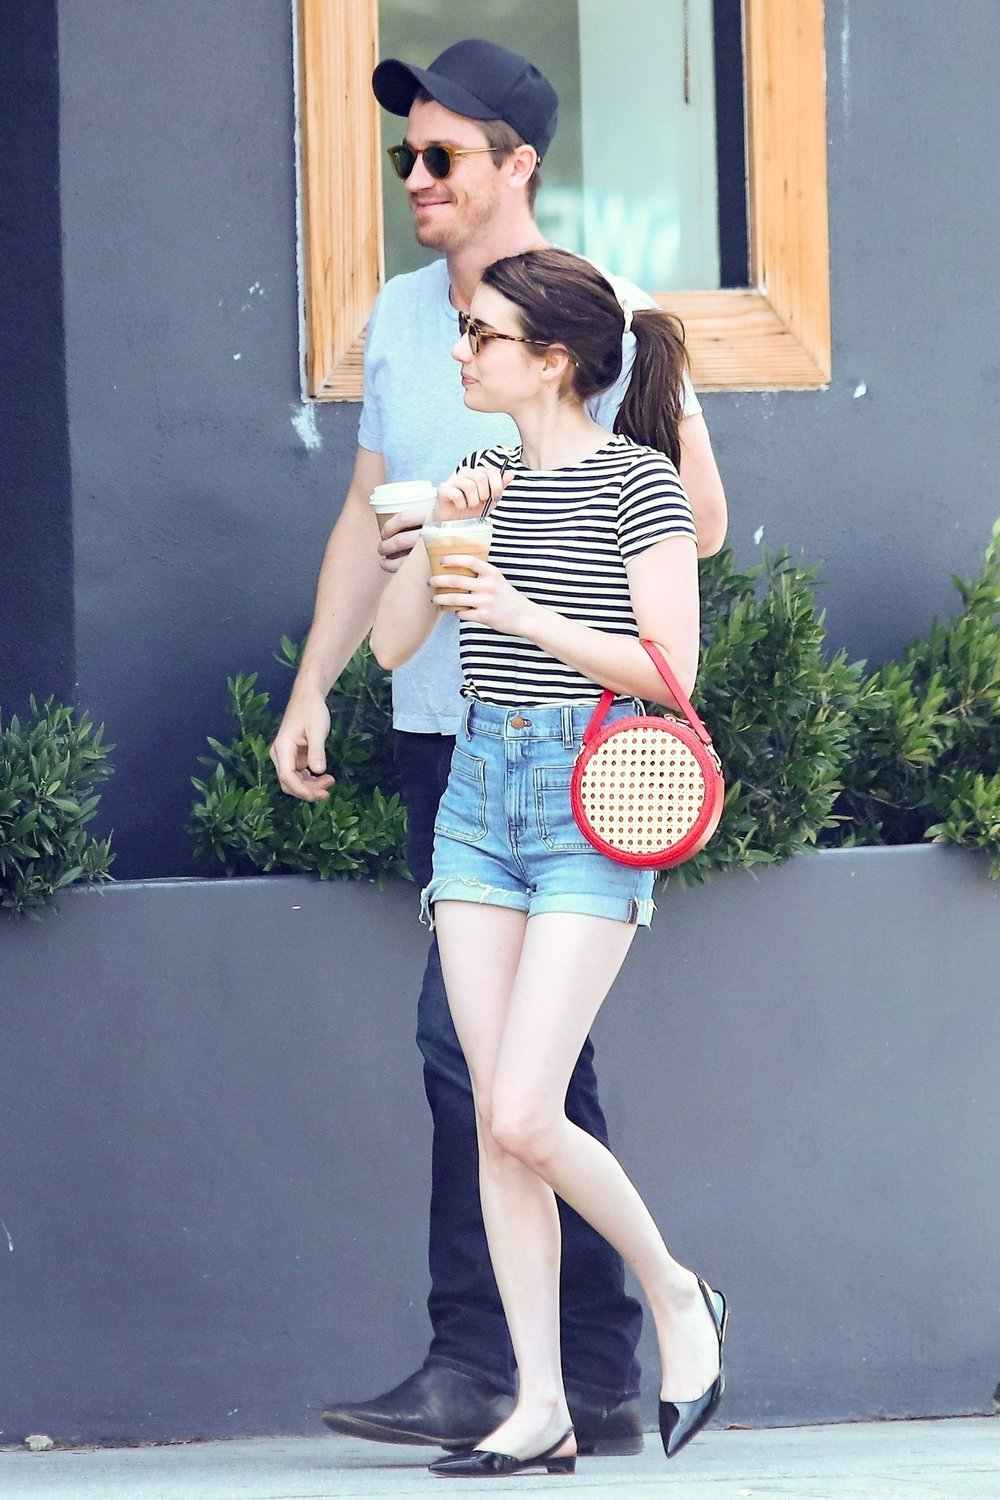 emma-roberts-lagence-striped-tee-out-for-coffee.jpg